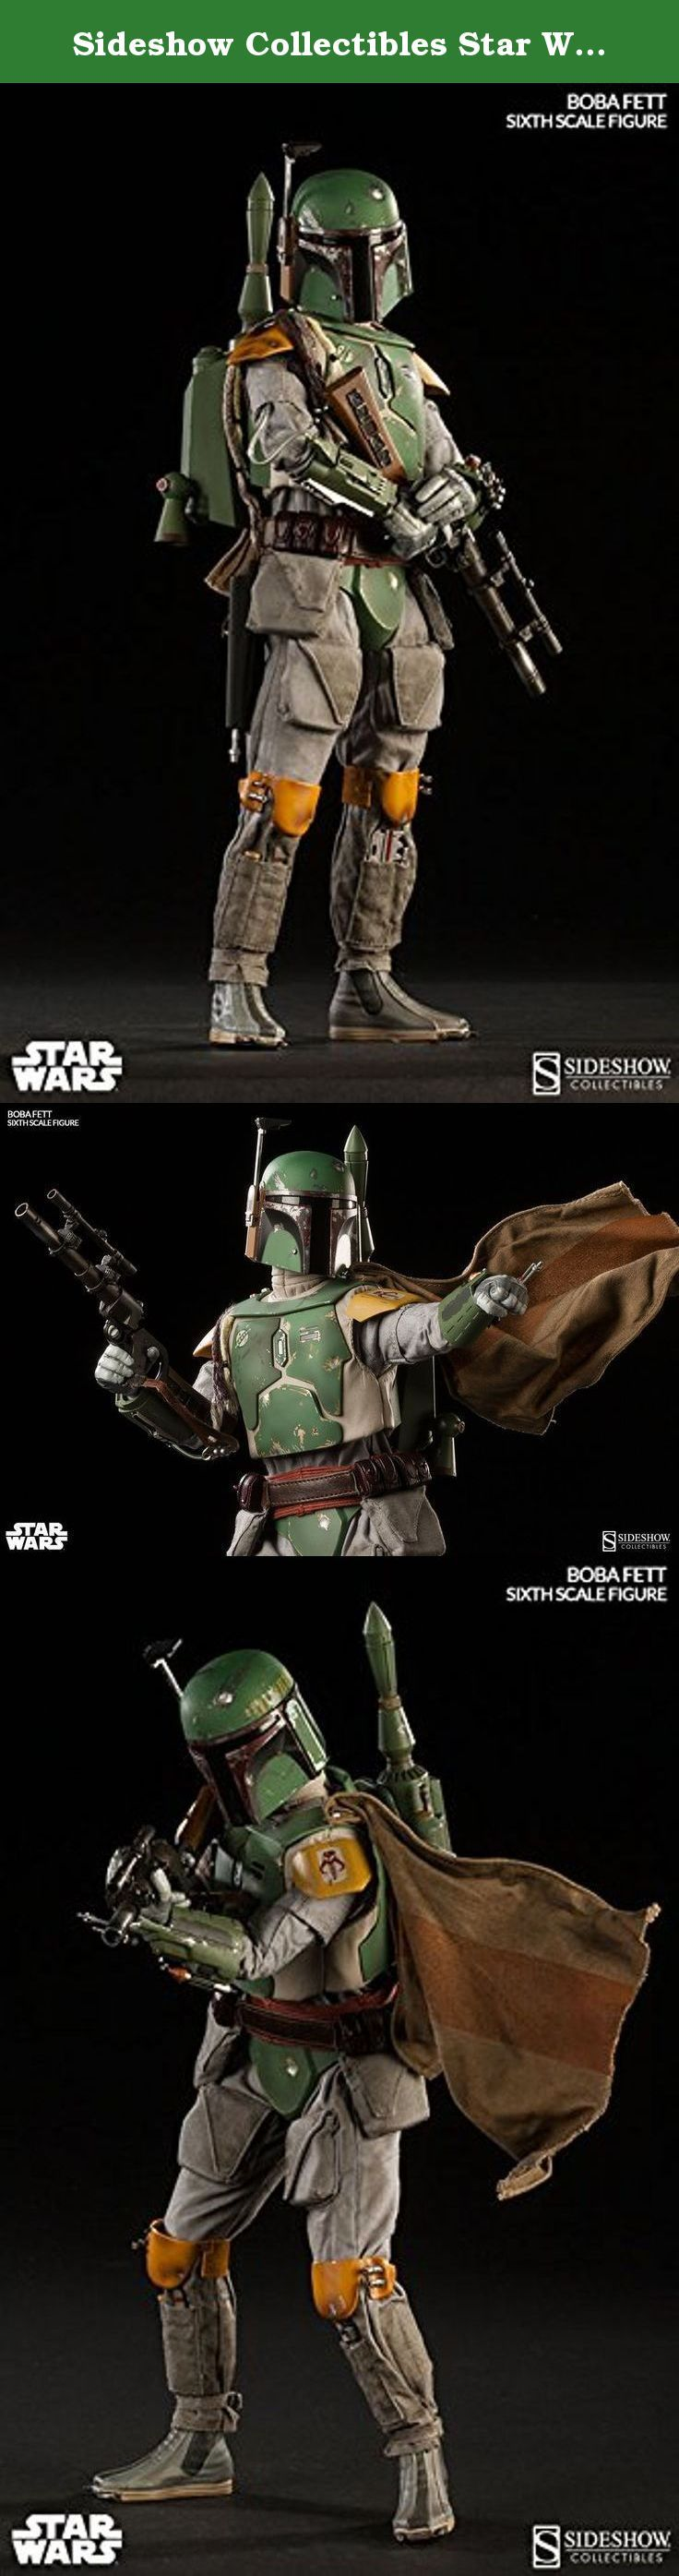 Sideshow Collectibles Star Wars 12 Inch Deluxe Action Figure Scum Villainy Boba Fett. The Boba Fett 12 inch Figure features: - Articulated Prometheus 1.1 body with over 30 points of articulation - Newly developed and sculpted forearms and chest - Highly detailed Mandolorian Boba Fett helmet - Fabric Flight Suit - Flight Suit Vest - Mandolorian Duraplast Body Armor Plates - Cape - Belt with four (4) utility pouches - Braided honor sash - Blaster Pistol Holster - Blaster Pistol - EE-3 mark…